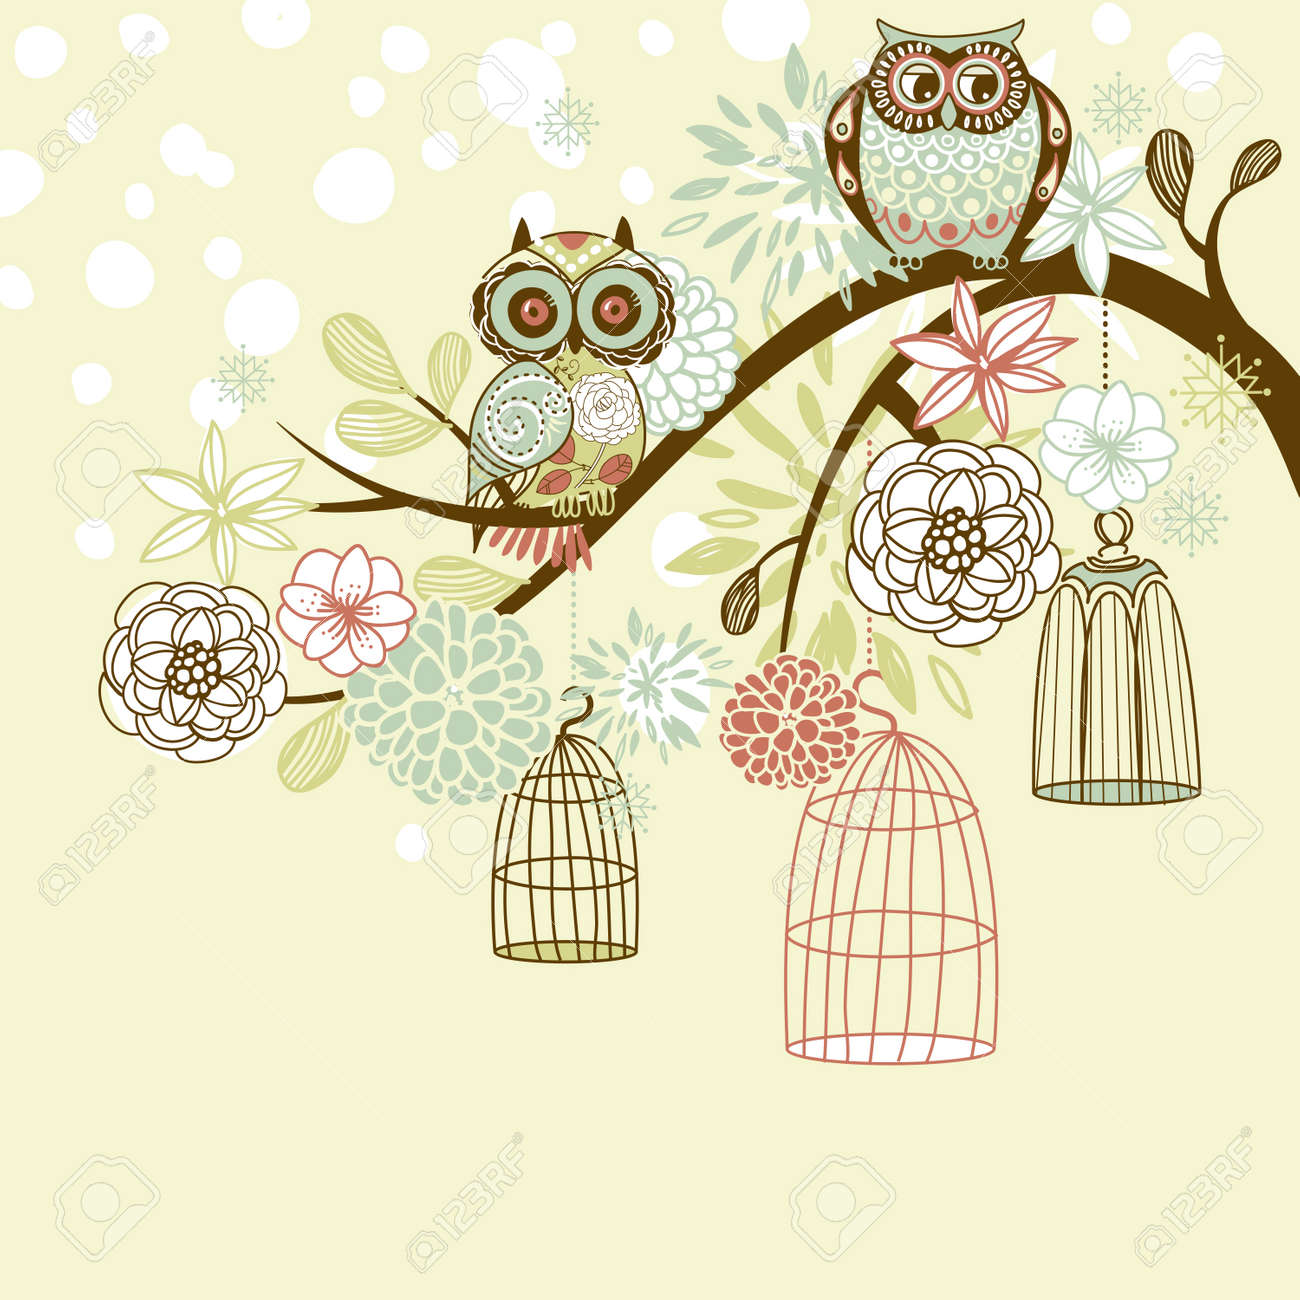 Owl winter floral background. Owls out of their cages concept vector Stock Vector - 16681054